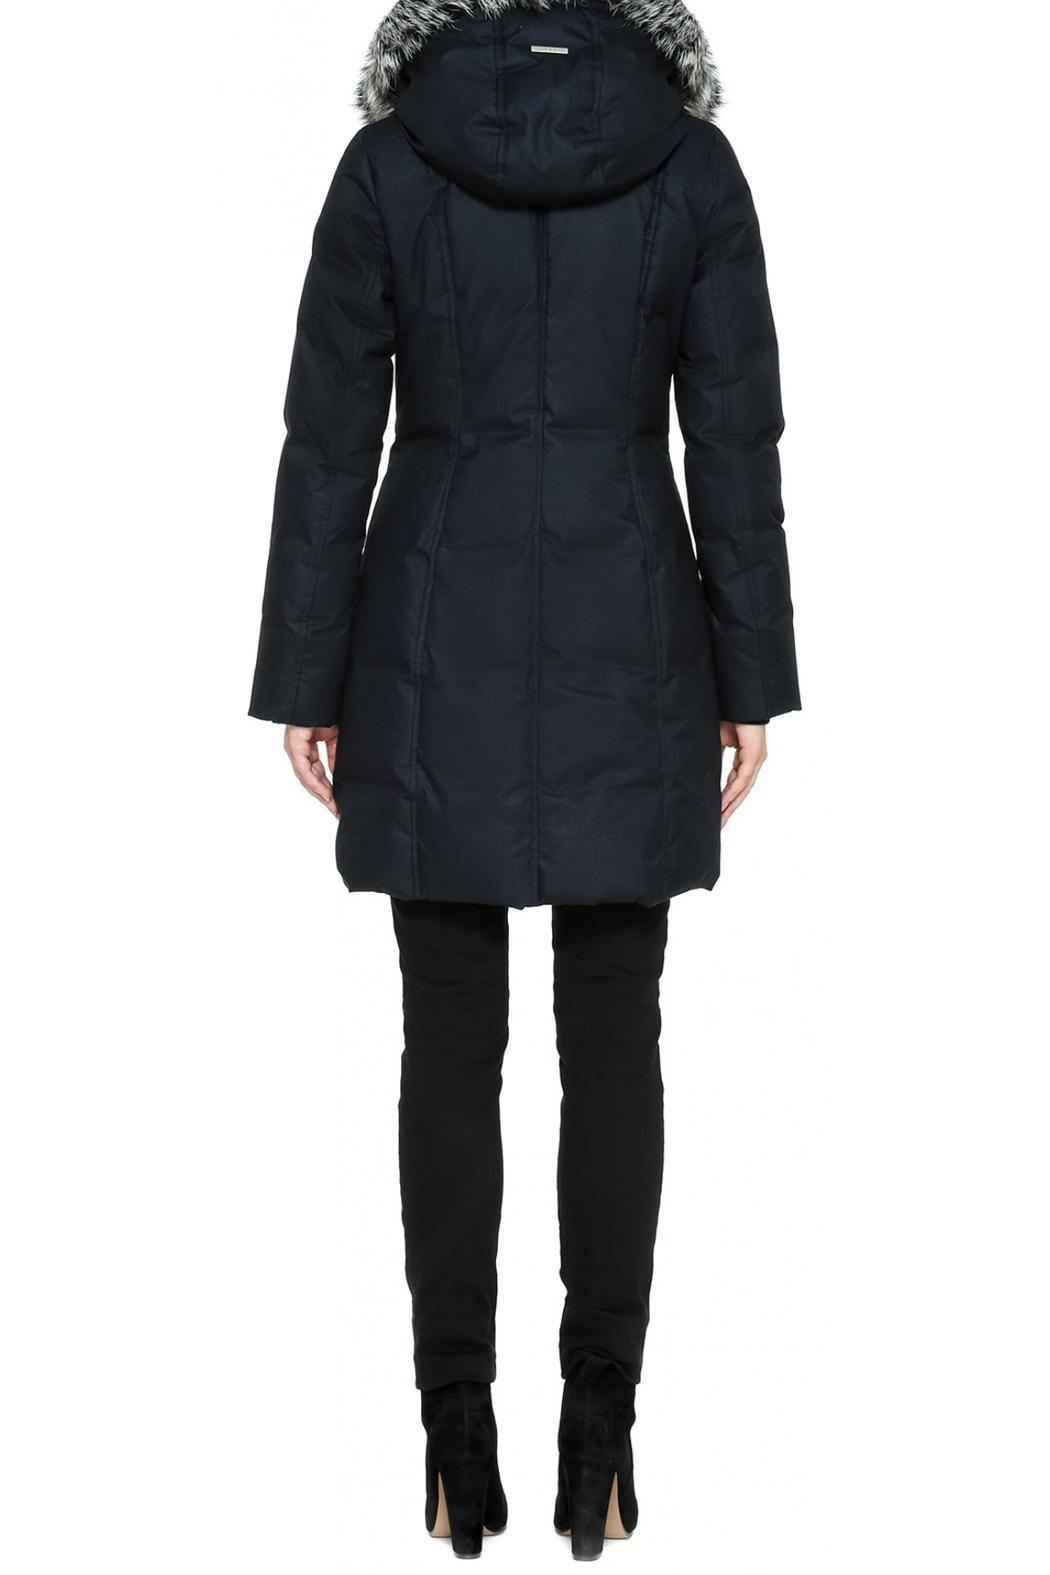 Soia Amp Kyo Chrissy F6x Coat From Montreal By Boutique Tag